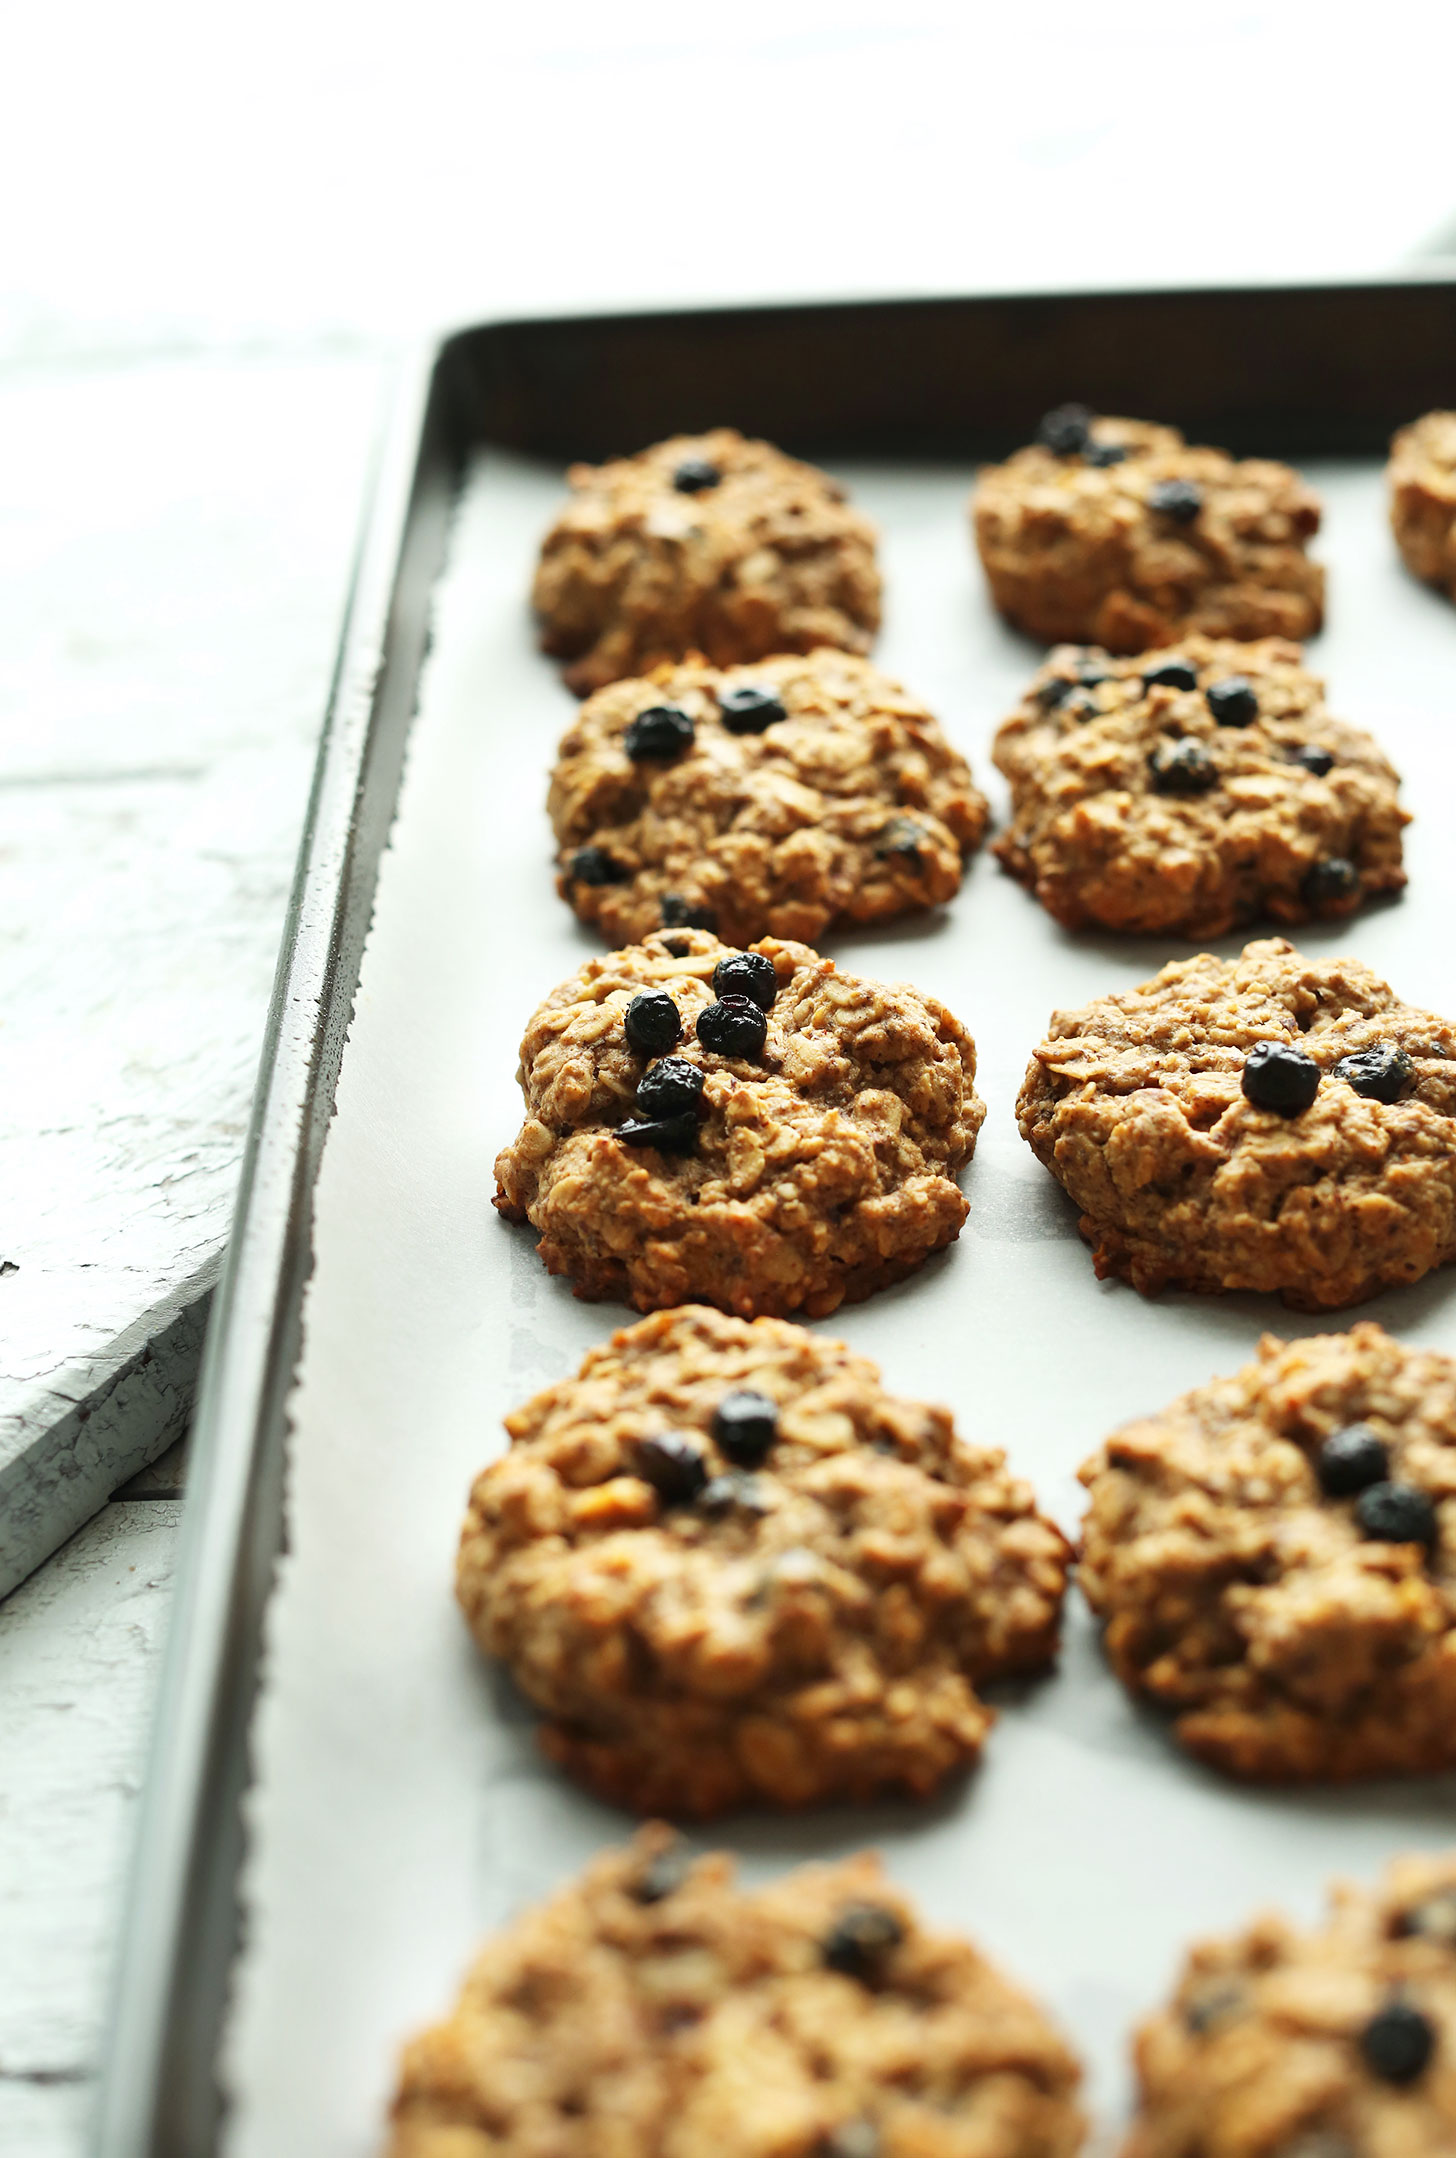 Blueberry Breakfast Cookies advise